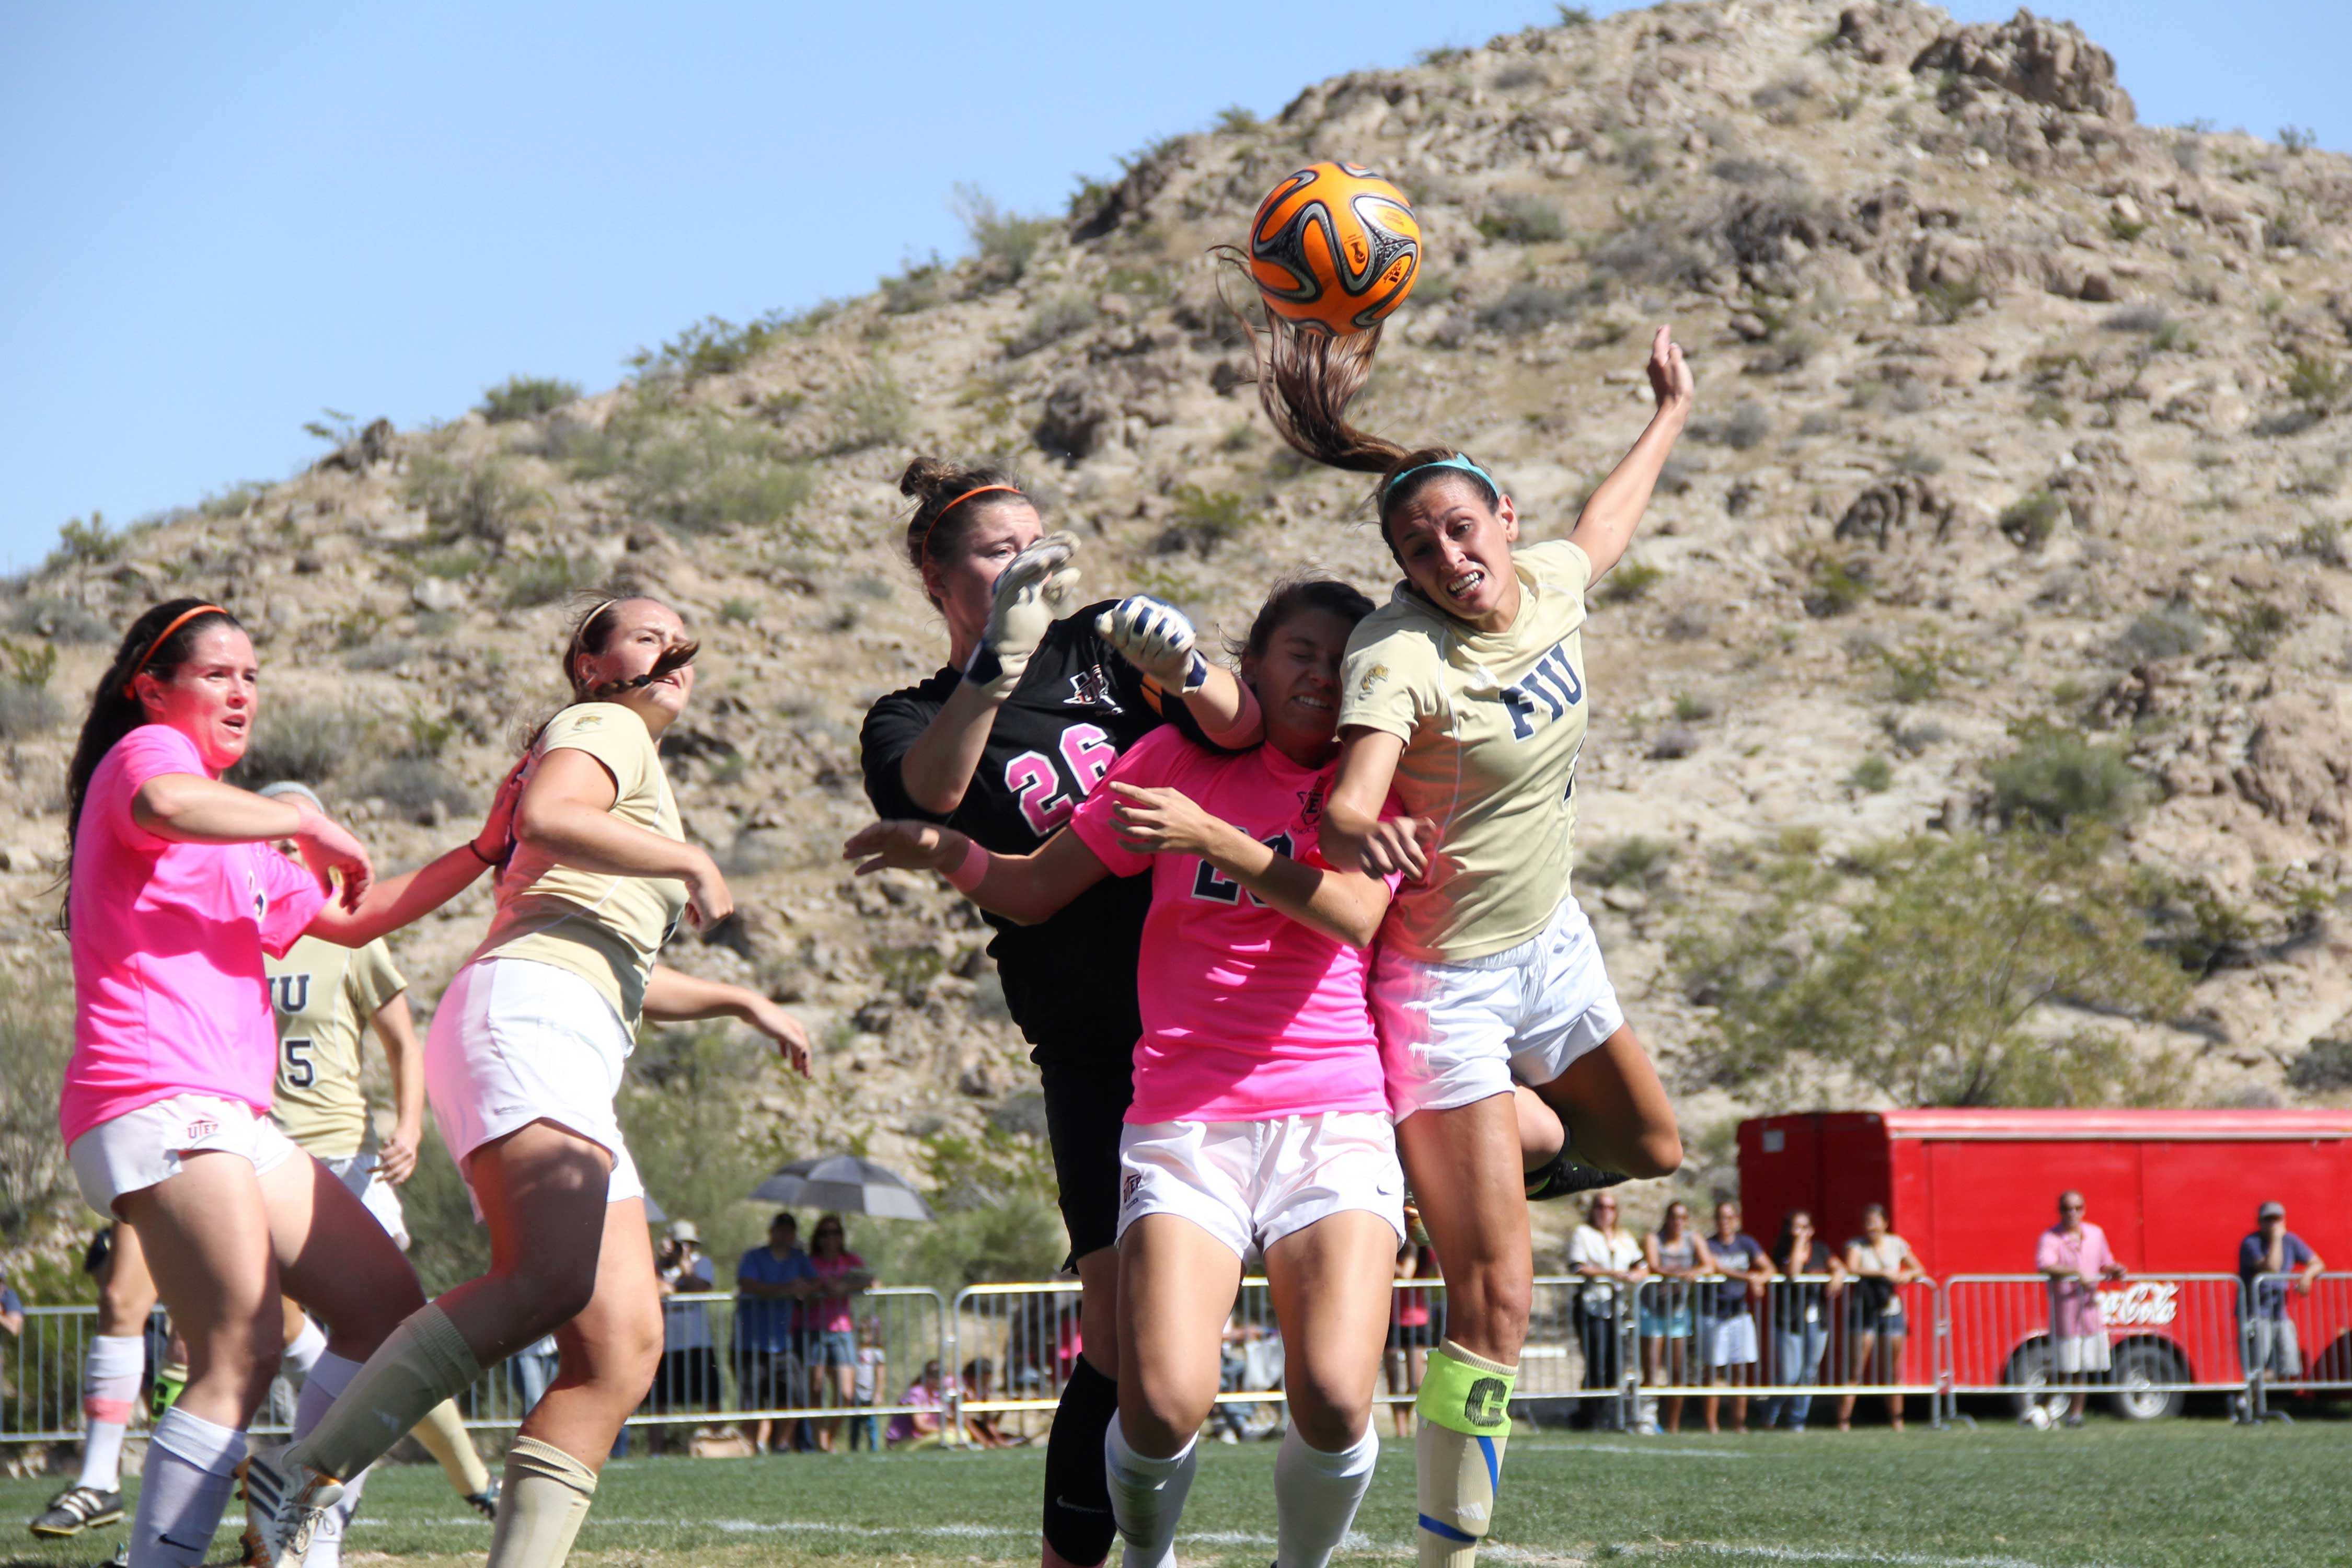 UTEP goalkeeper Sarah Dilling attempting a save.